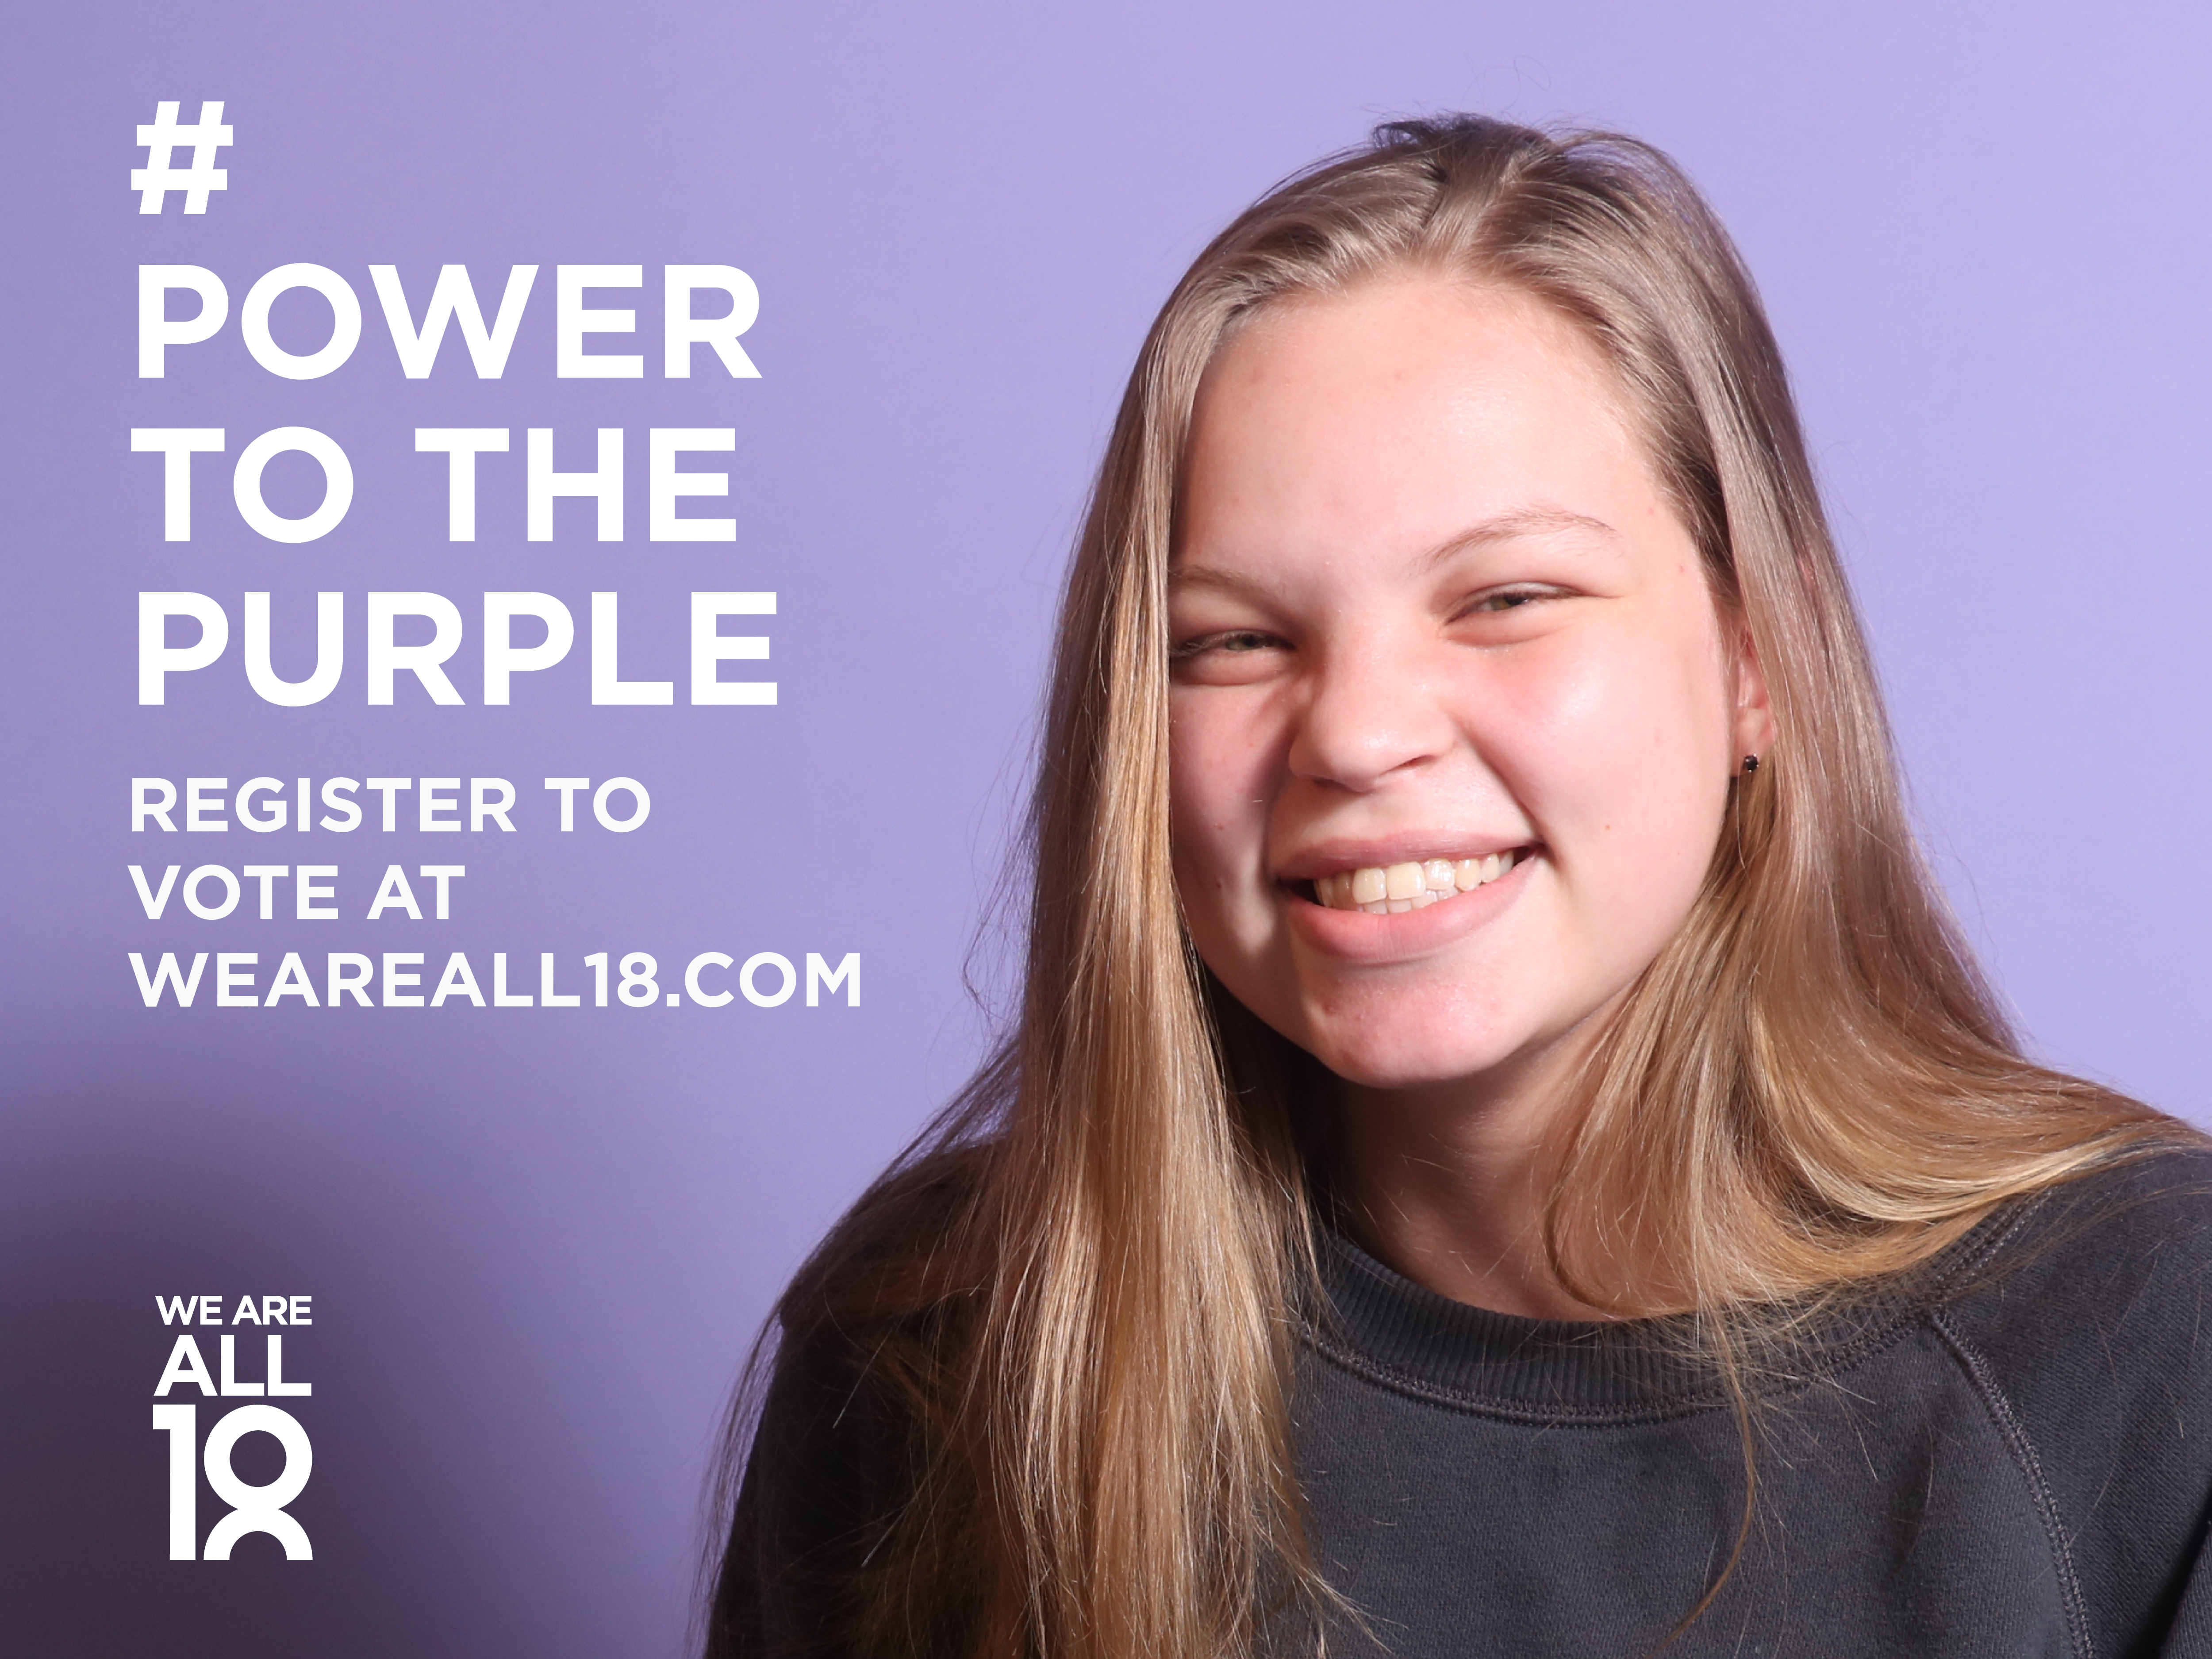 Power to the purple